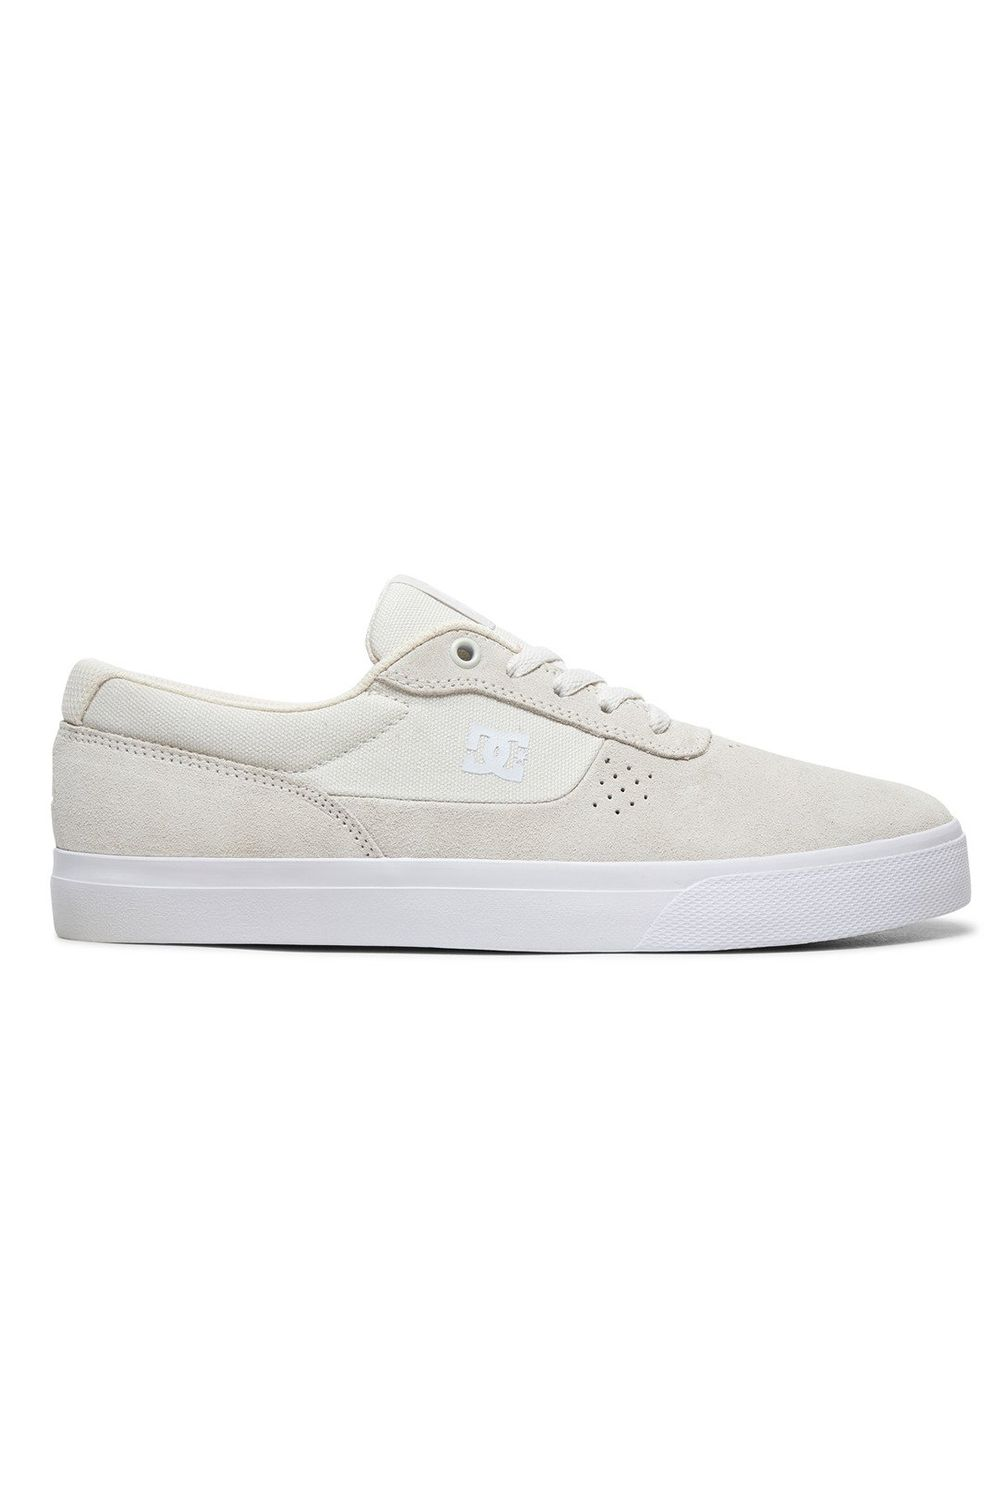 DC Shoes Shoes SWITCH S White/Gum